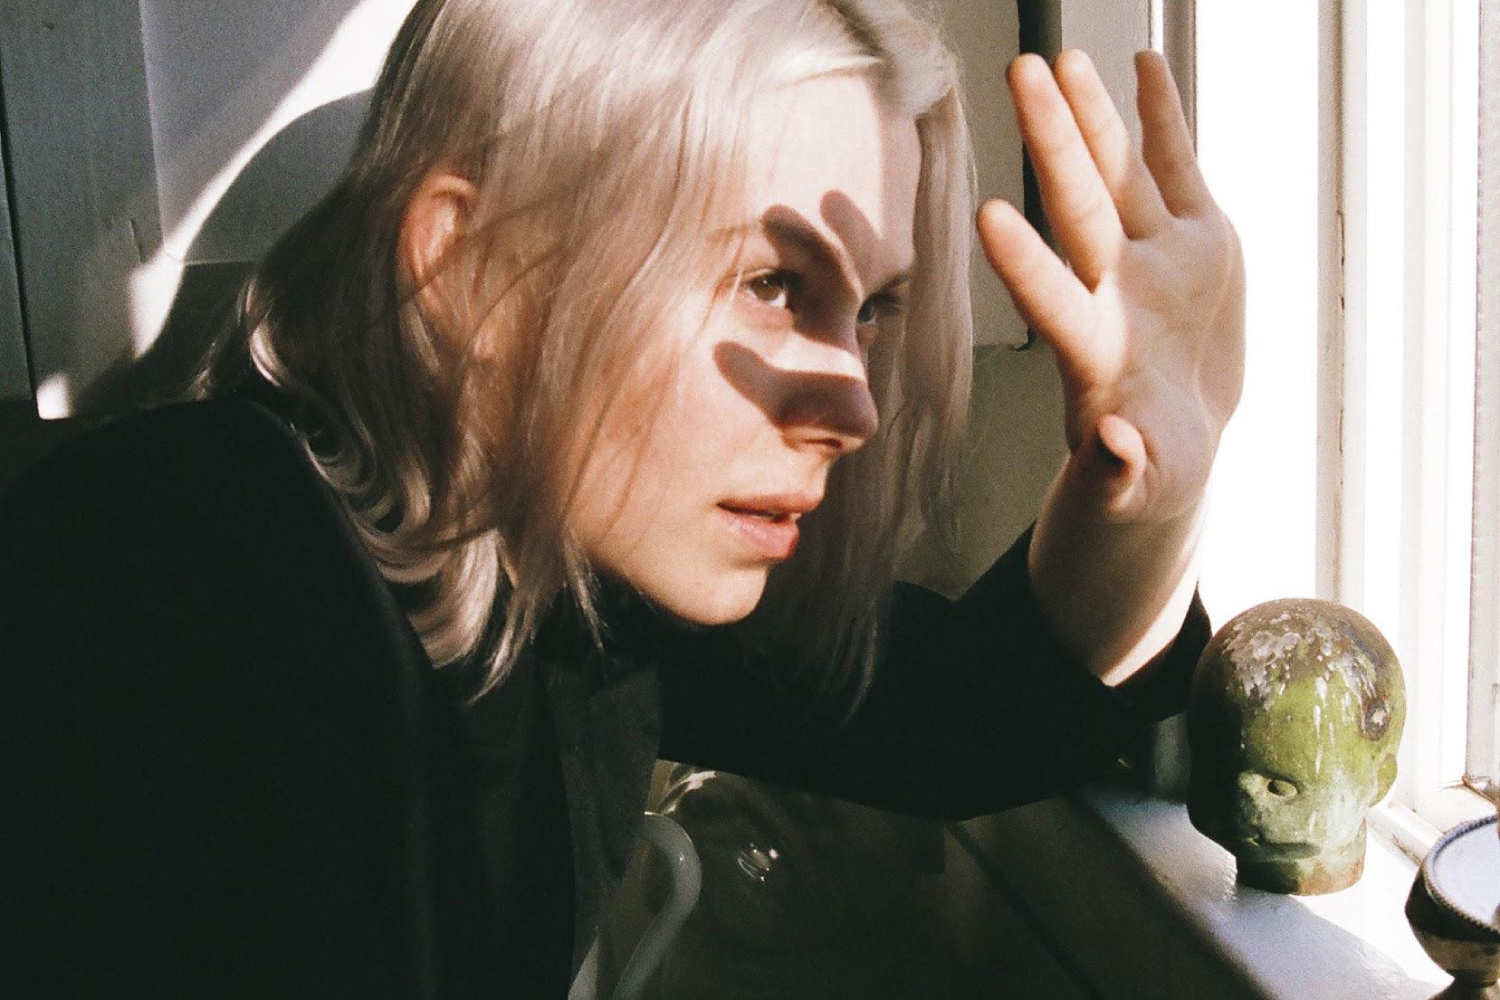 Phoebe Bridgers and Conor Oberst are teasing something called the 'Better Oblivion Community Center'